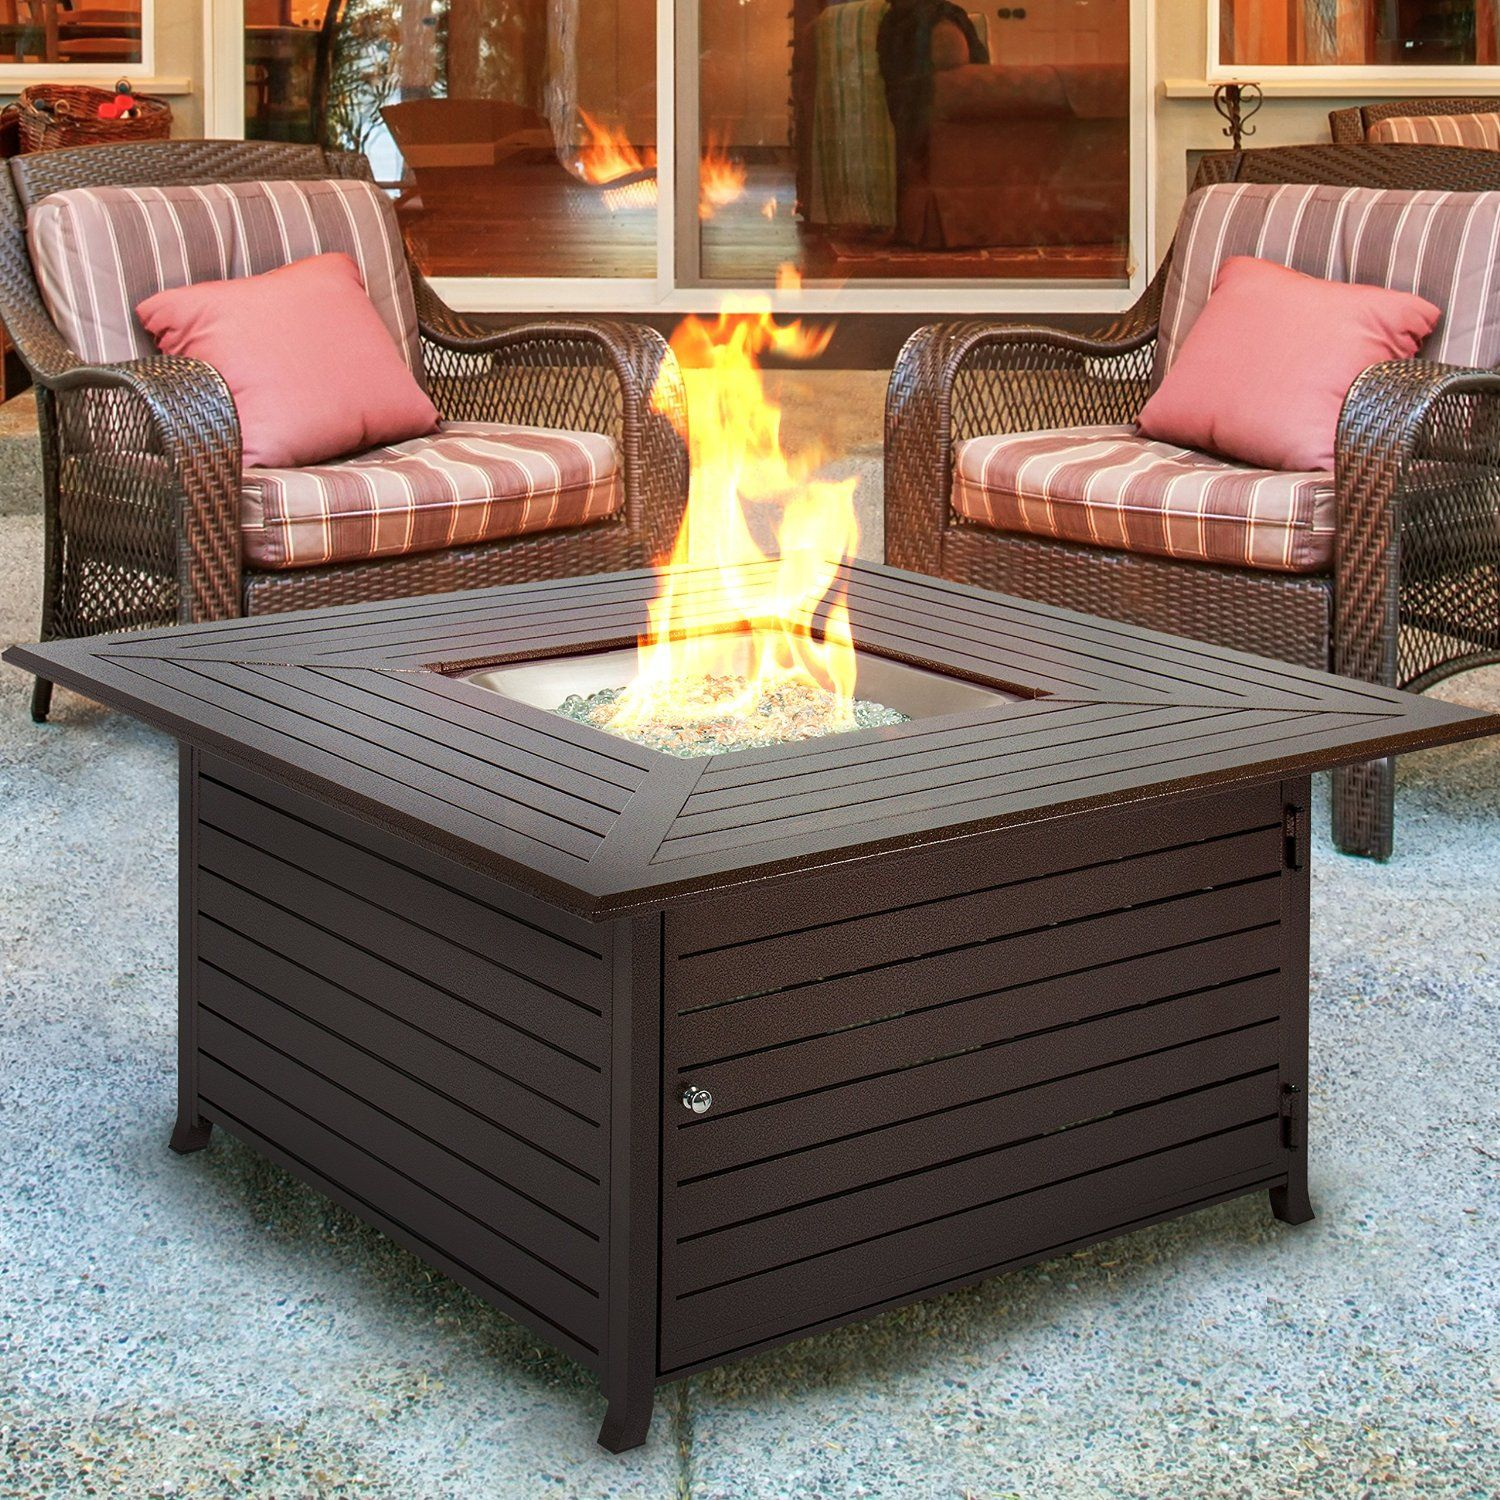 7 Best Gas Fire Pit Reviews 2017 | Buying Guide From Experts